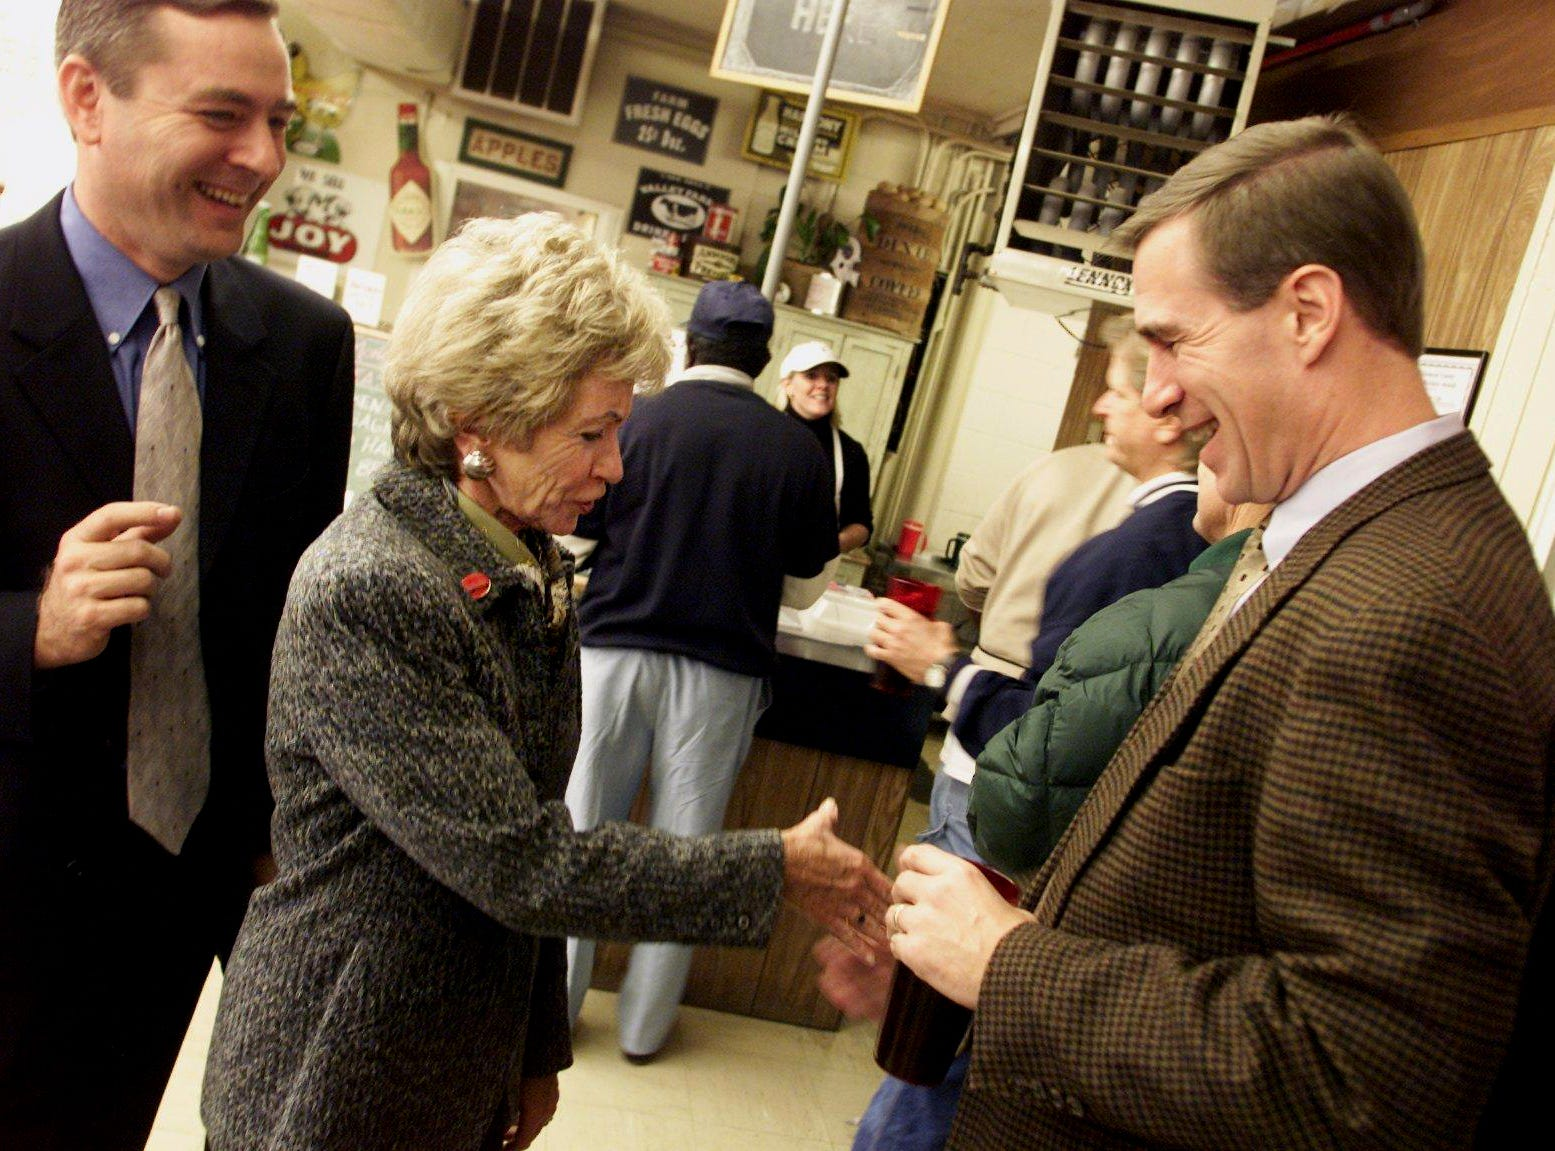 Honey Alexander, center, wife of U.S. Senate candidate Lamar Alexander, greets patrons in line at One Stop Cafe in downtown Franklin on Nov. 4, 2002, including state Senate candidate Jim Bryson, right. Looking on is state House representative Glen Casada, left.